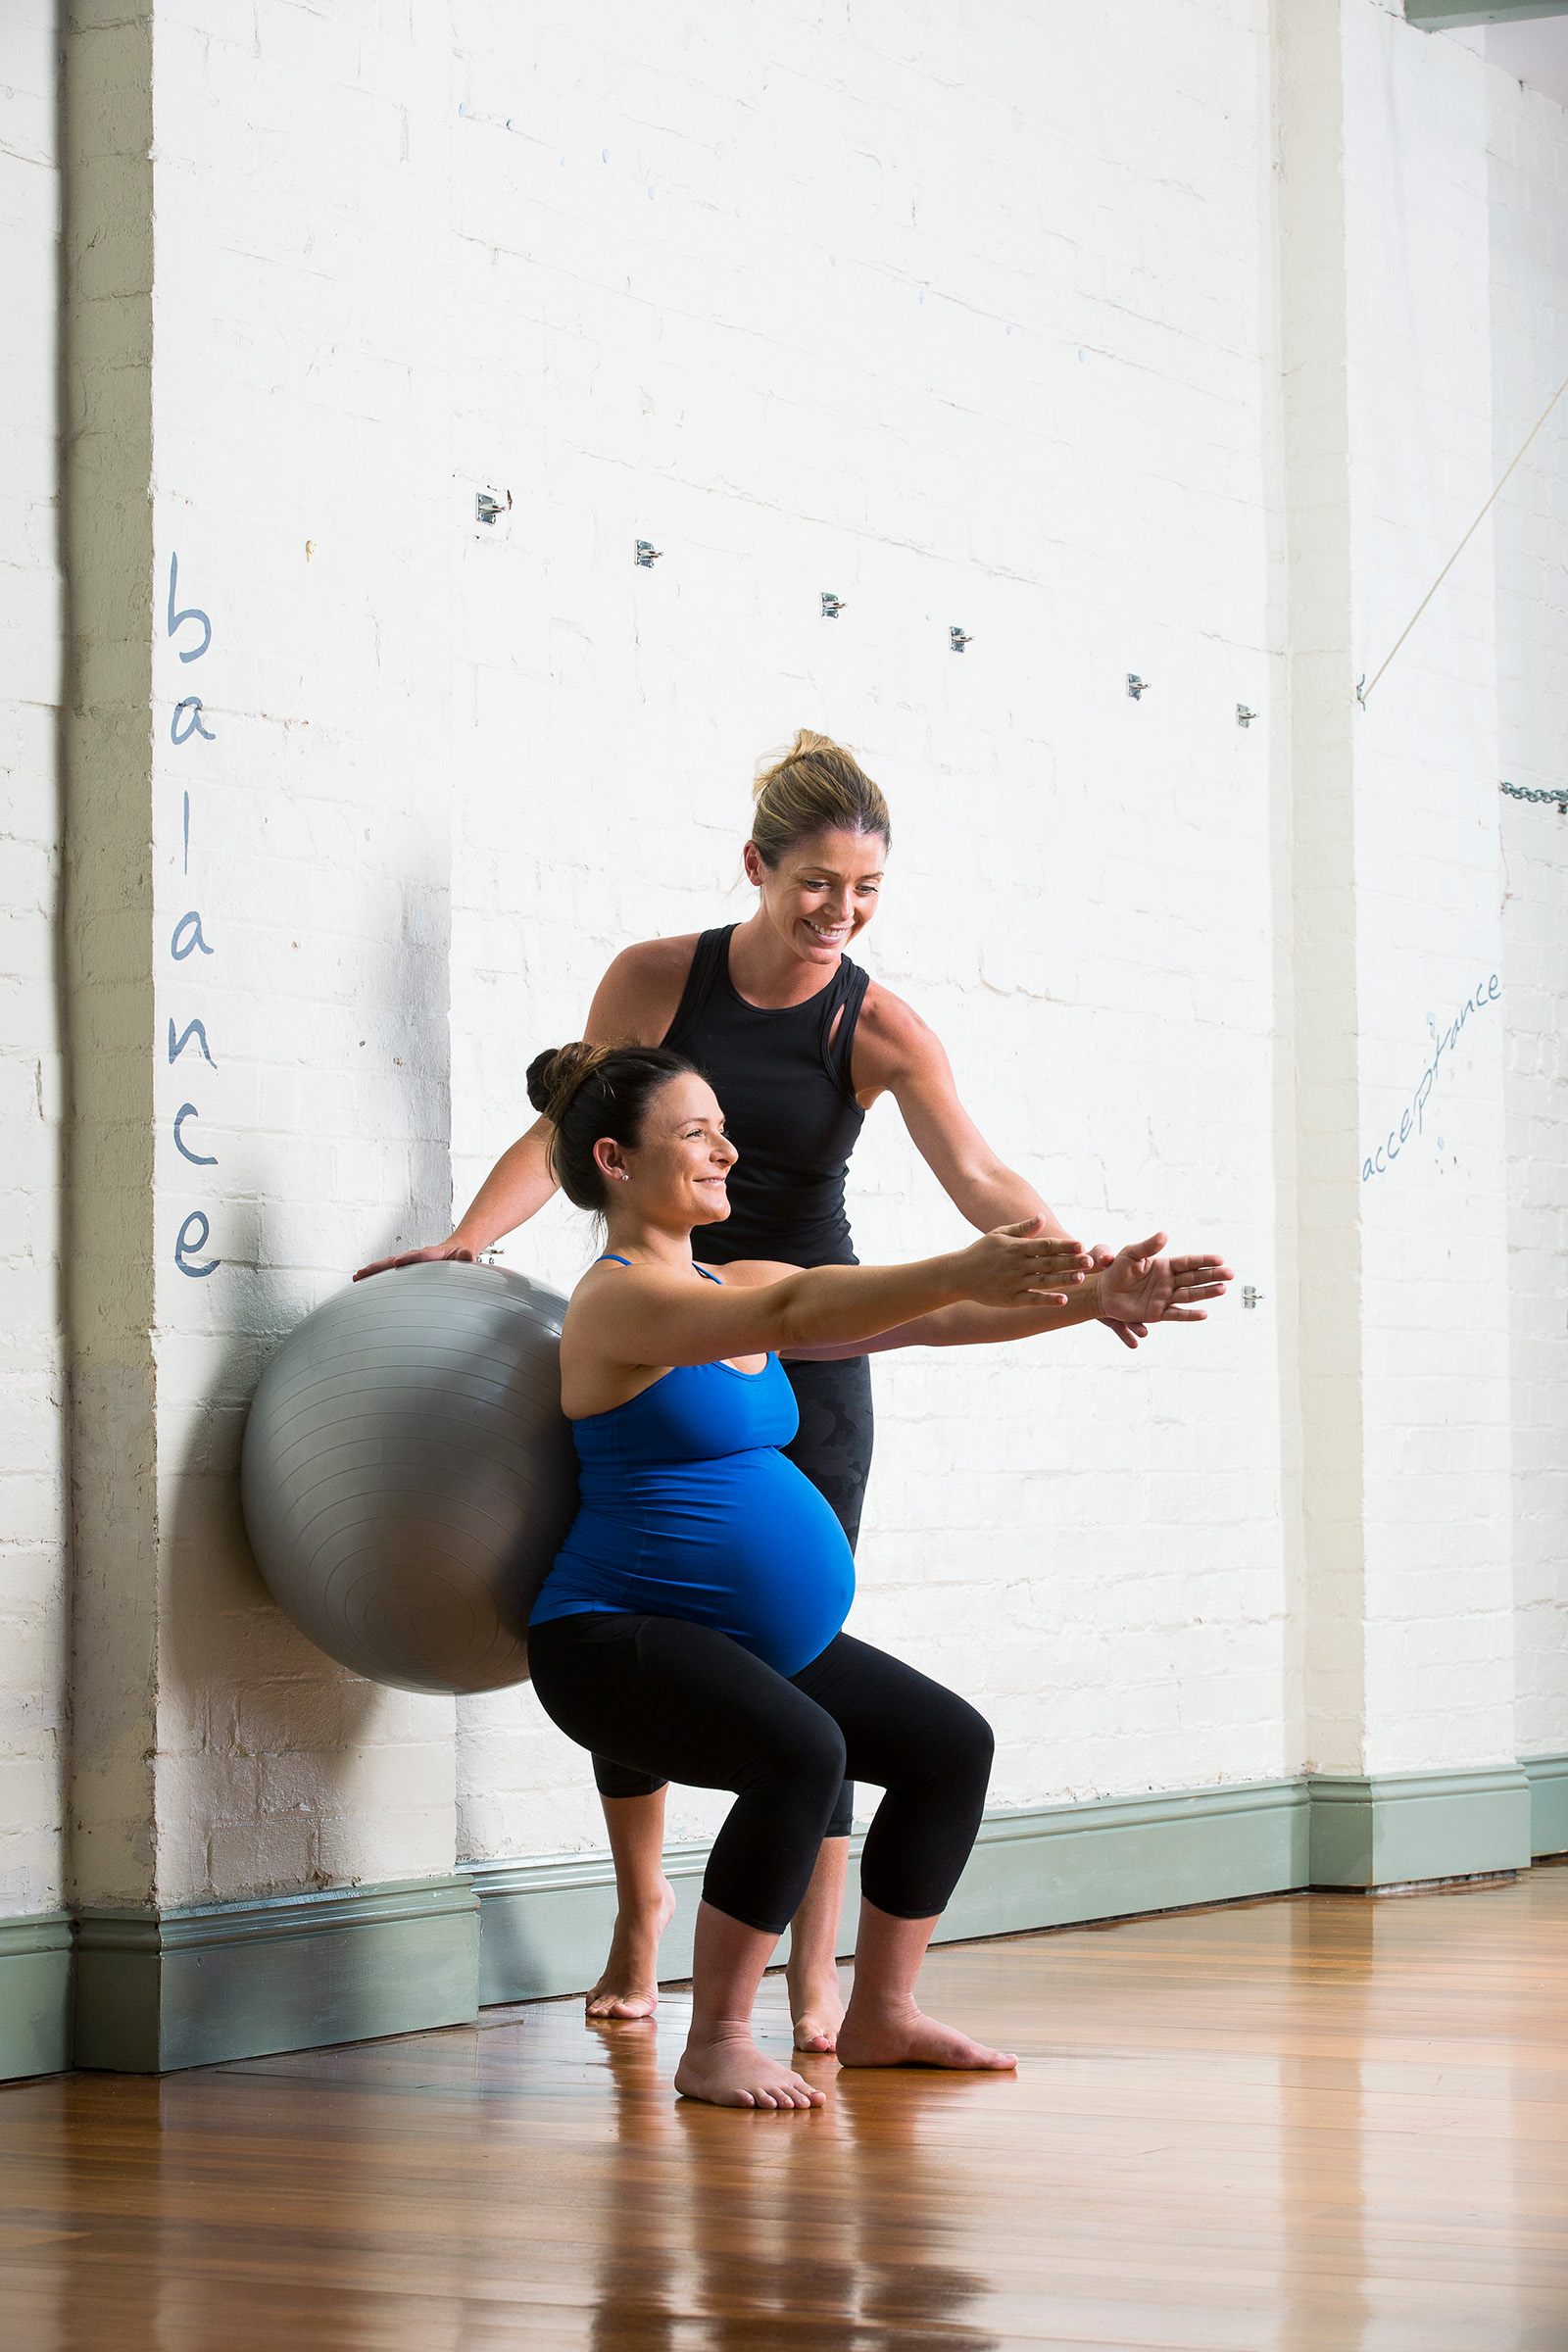 Editorial location fitness photography for Fitness Australia of pregnant woman squatting and being instructed by trainer